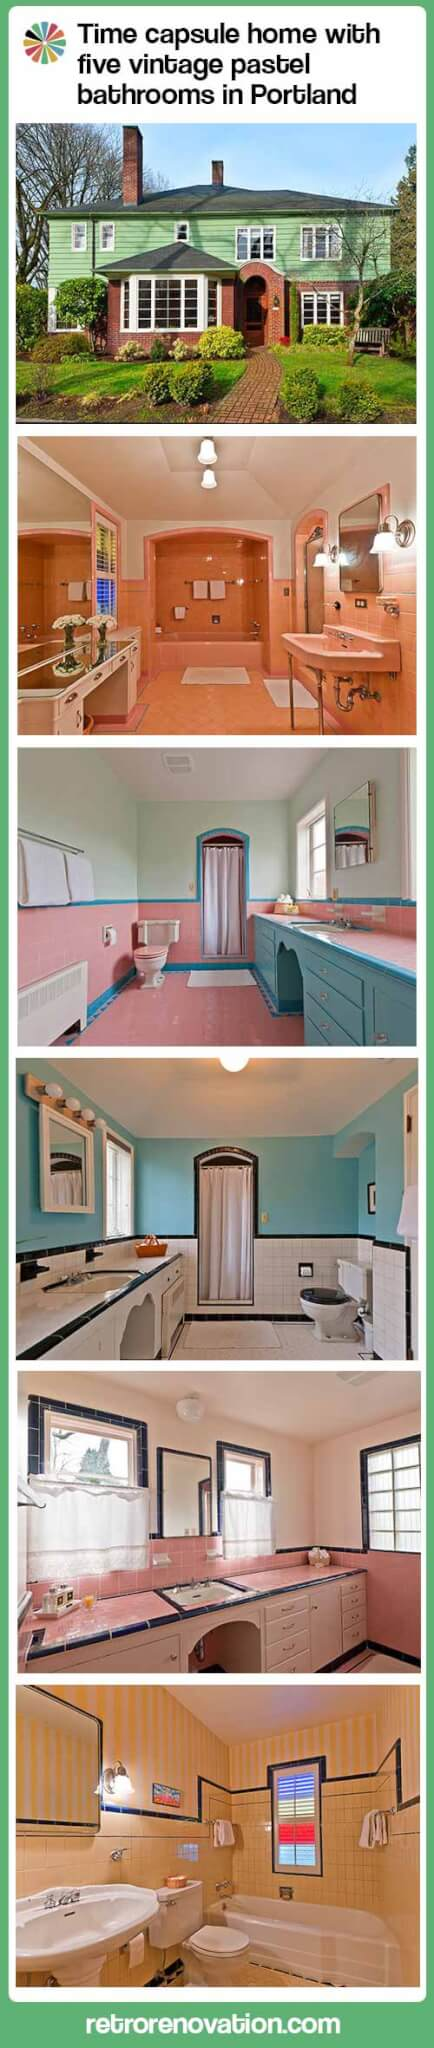 Portland-time-capsule-with-five-pastel-baths